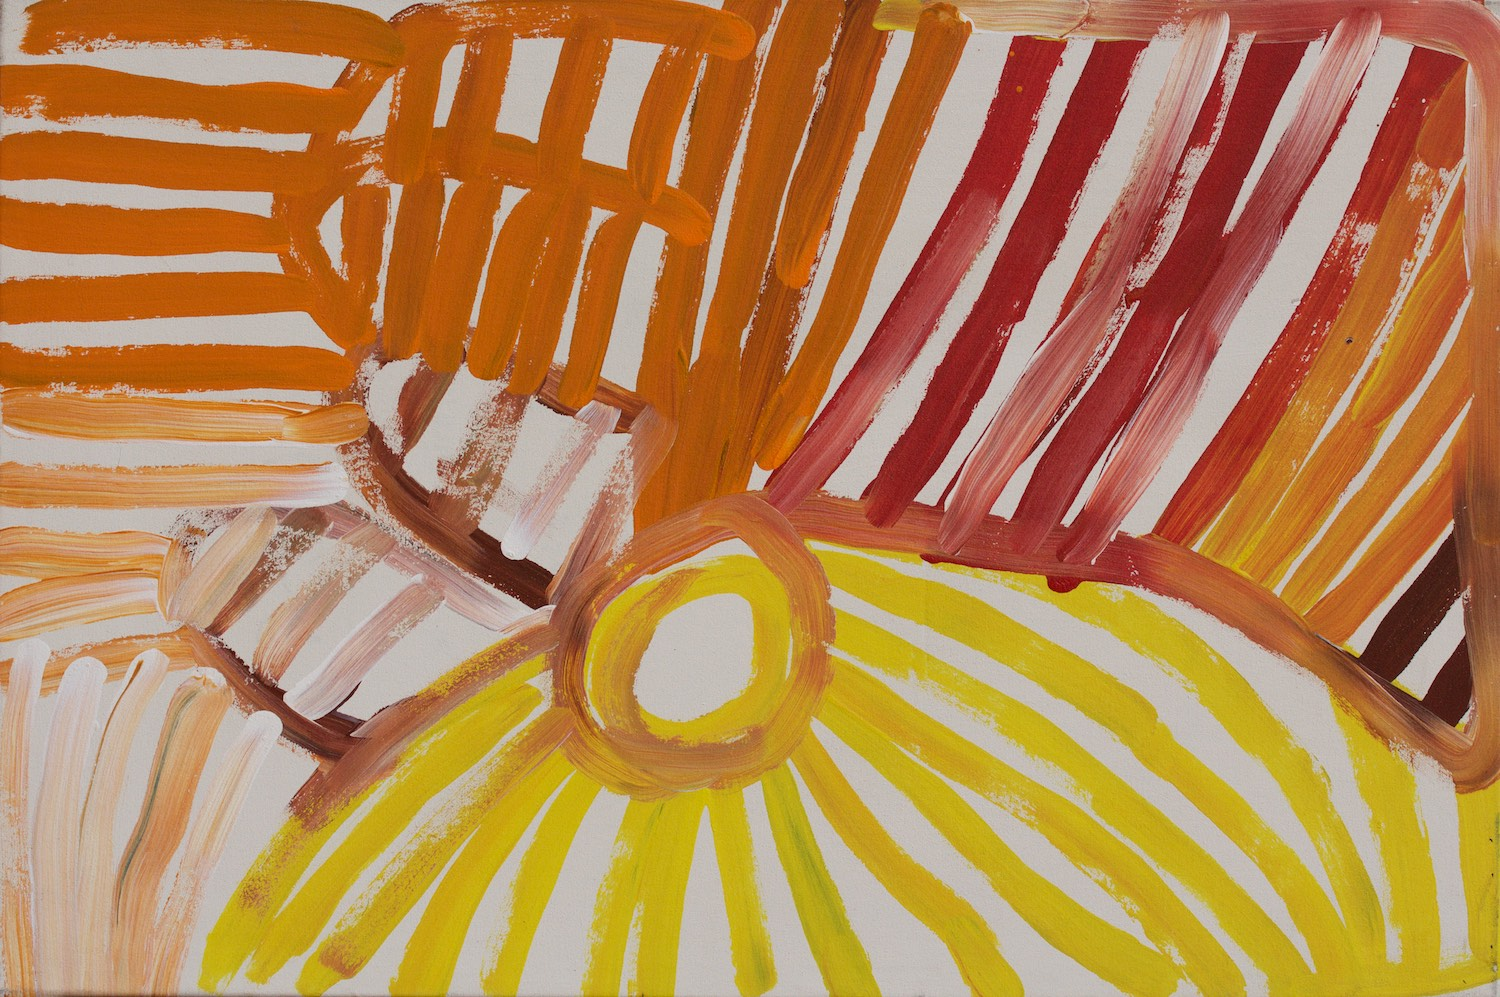 Minnie Pwerle 'Awelye Atnwengerp' 91cm x 61cm (Painted in 2004) #14950